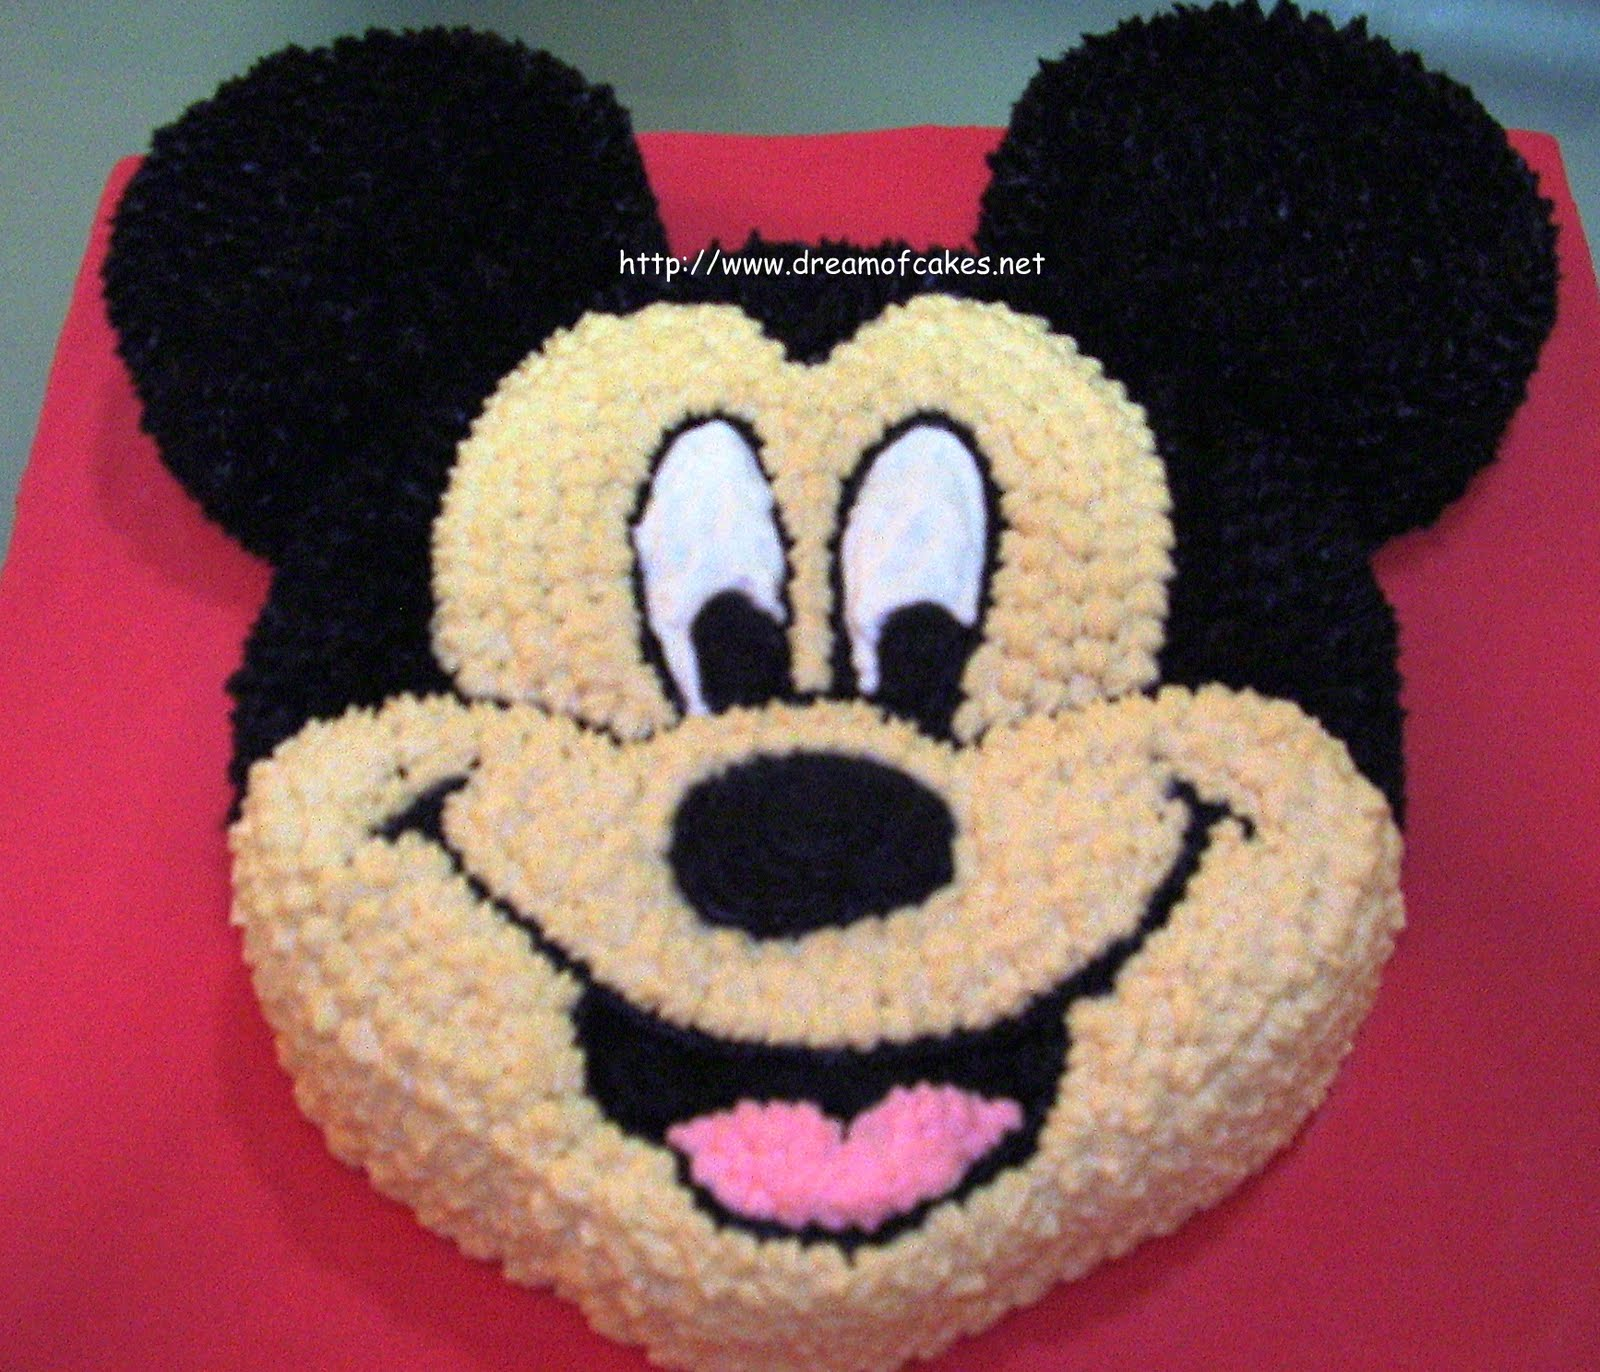 Birthday Cake Pictures Of Mickey Mouse : Dream of Cakes: Mickey Mouse Birthday Cake